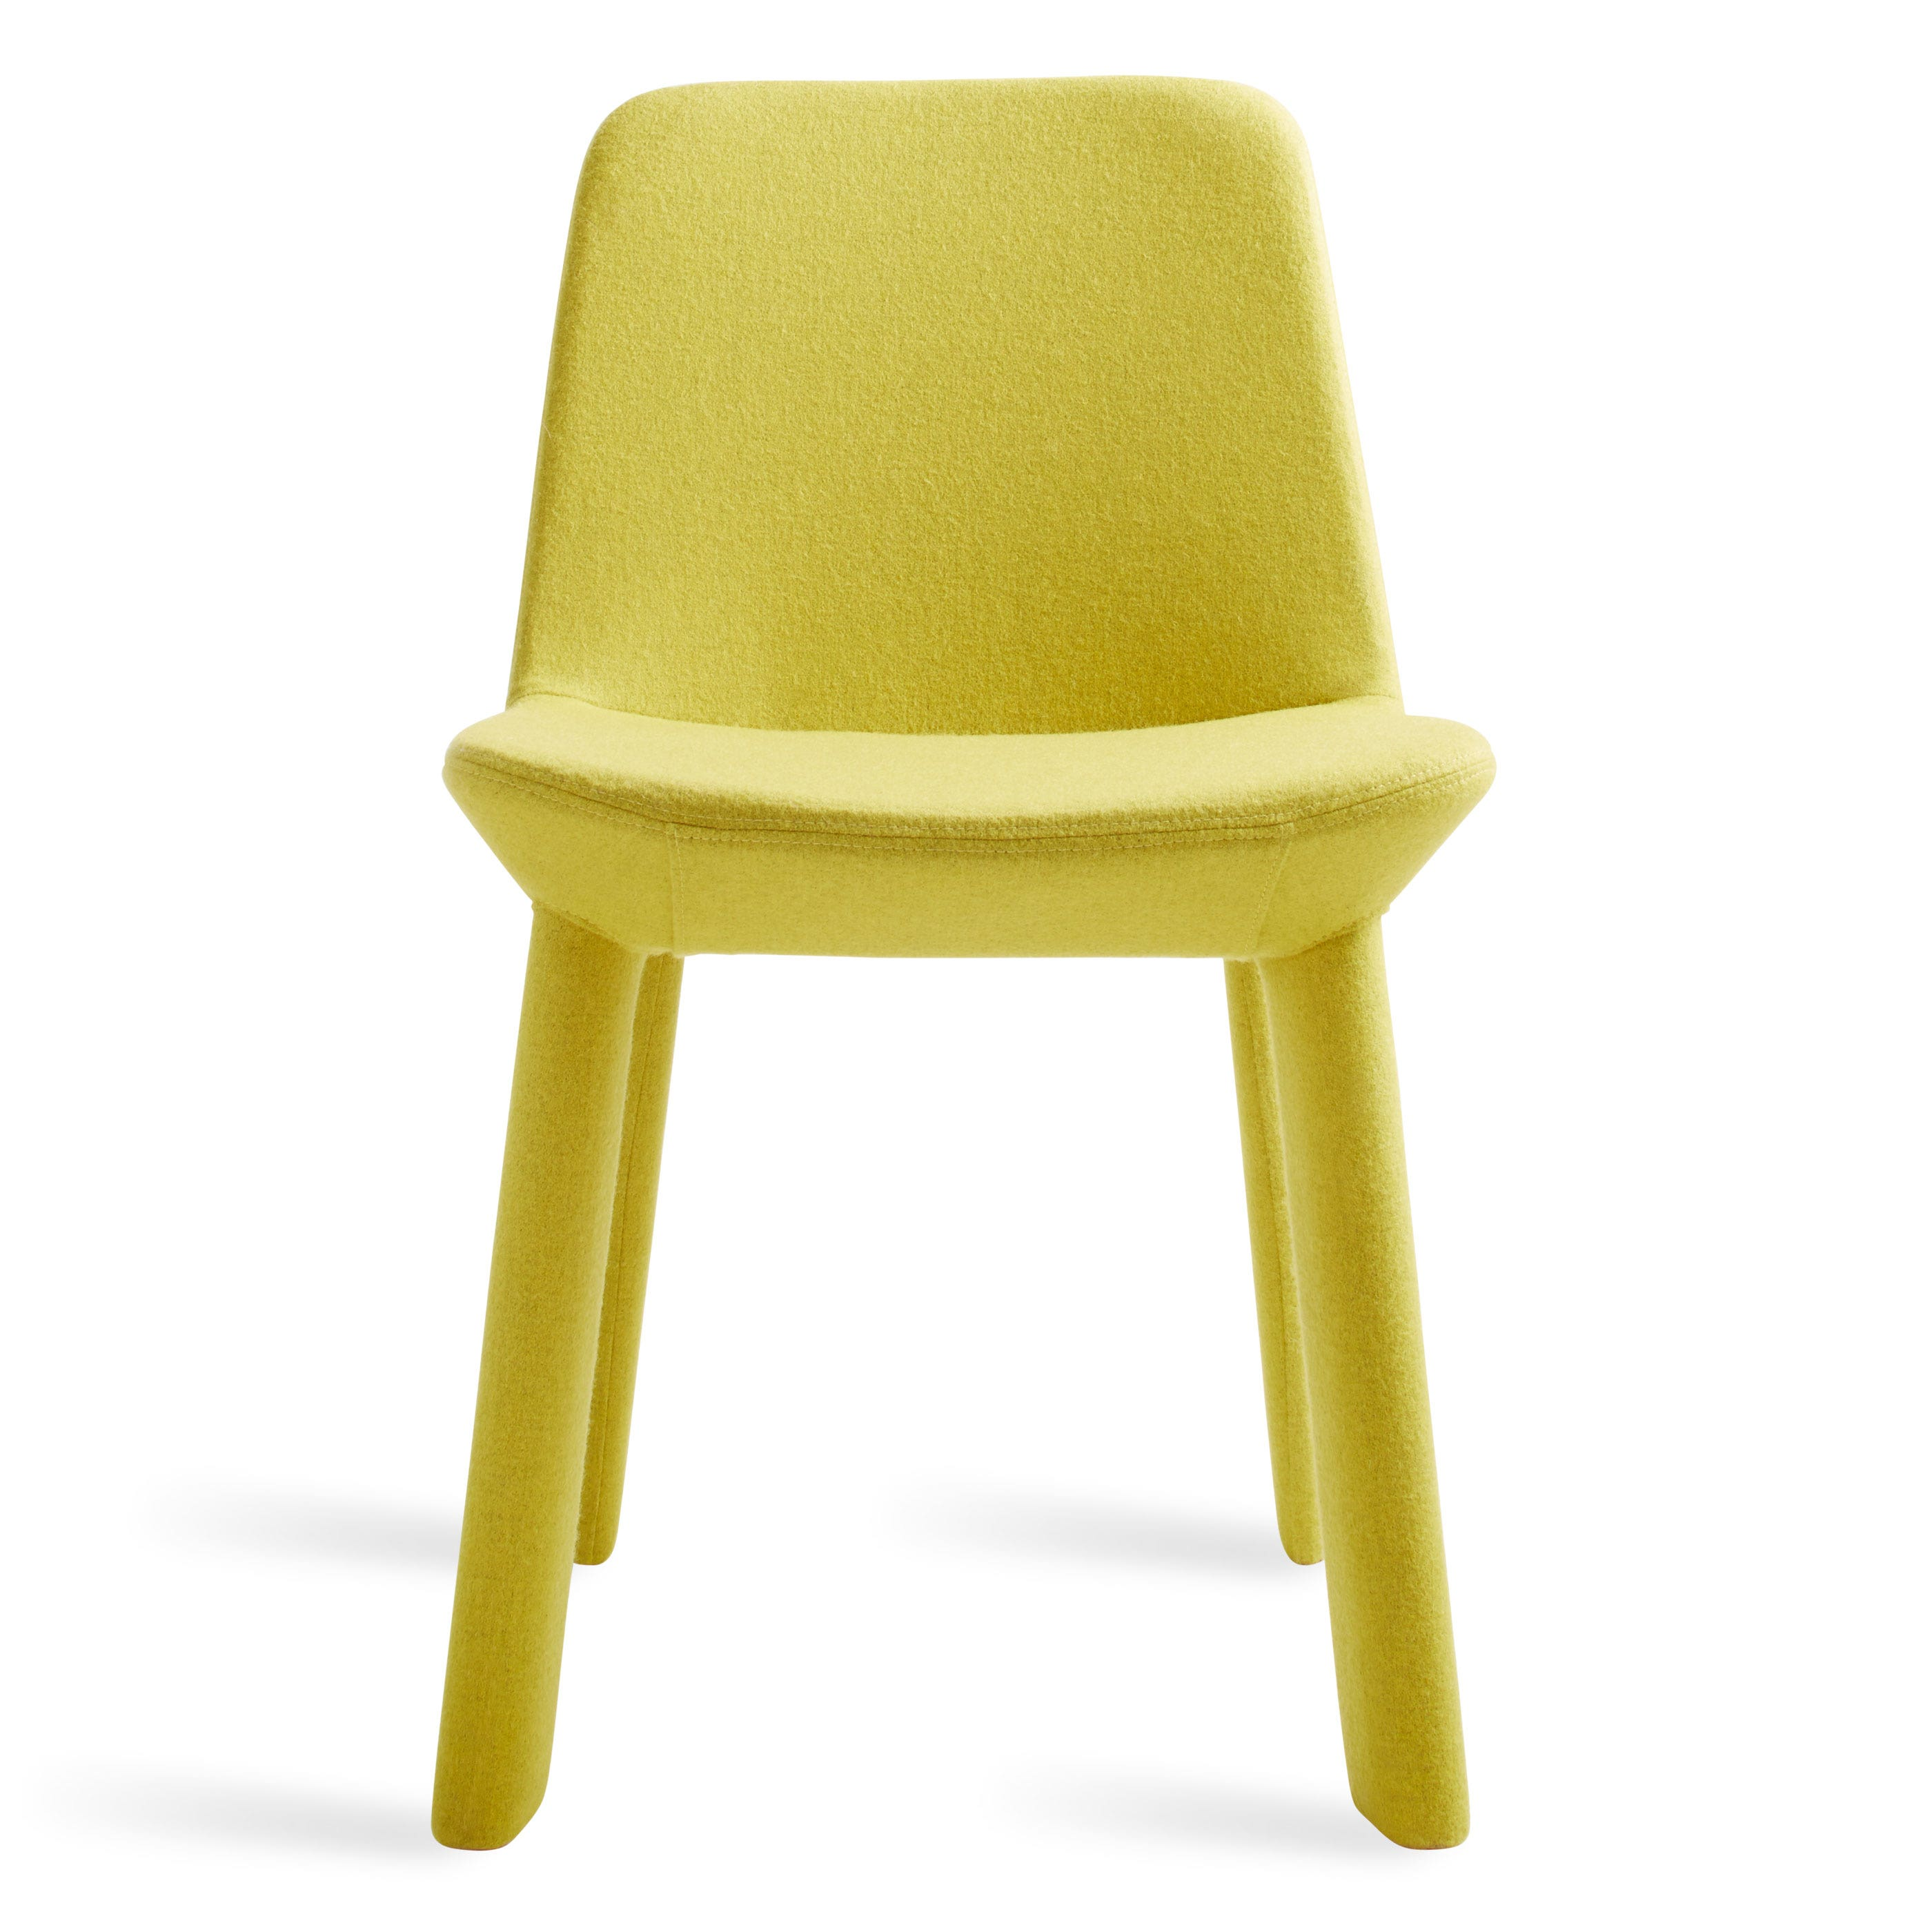 Neat Chair - Modern Upholstered Dining Chair | Blu Dot